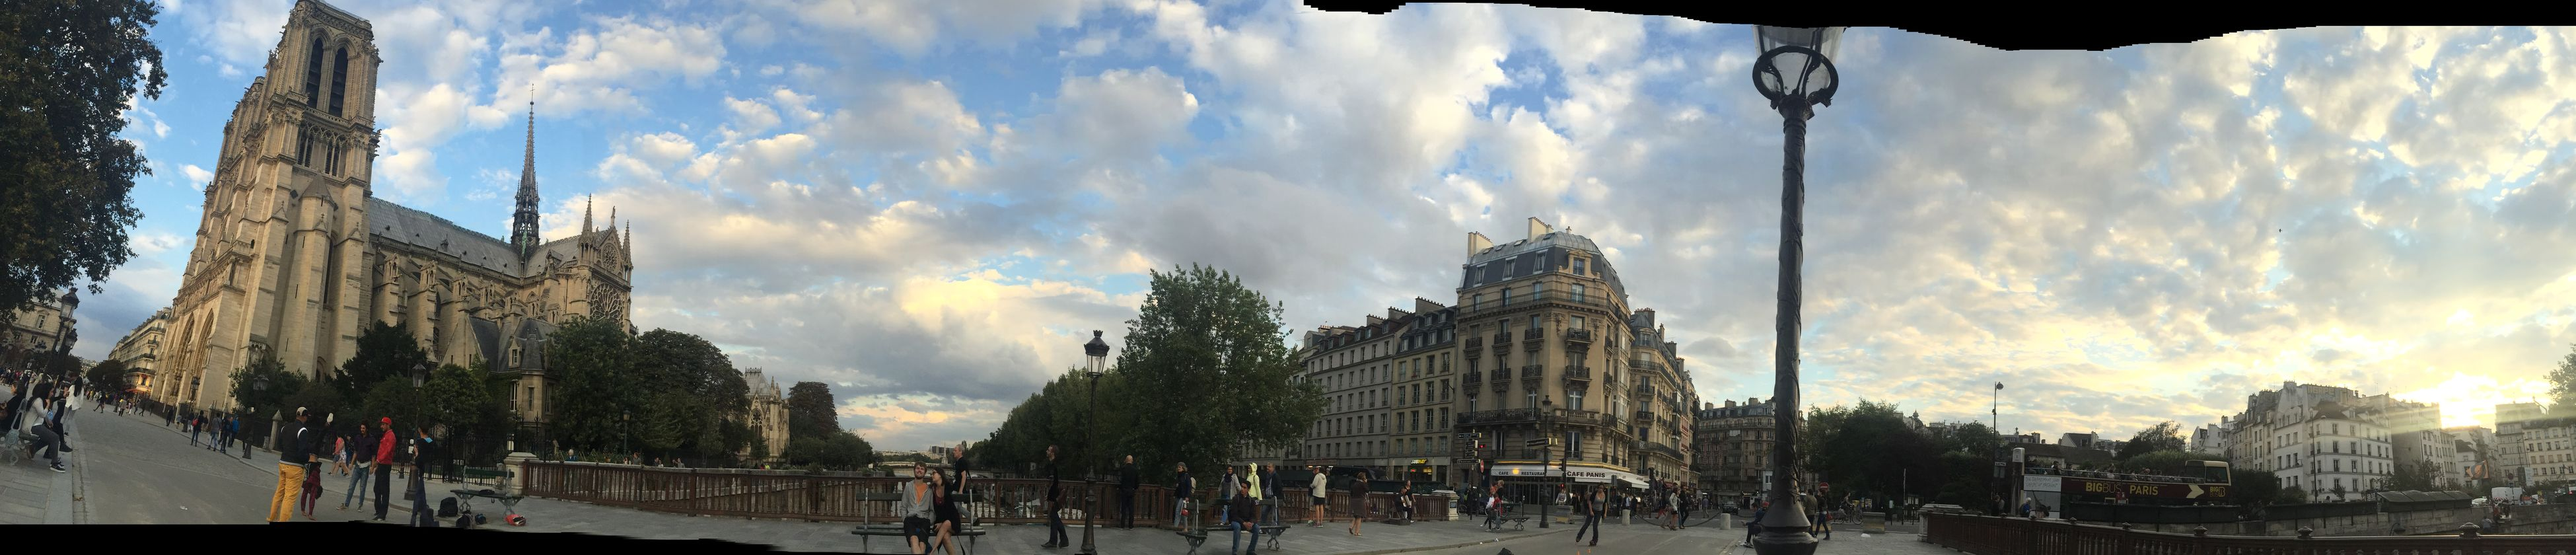 architecture, sky, built structure, building exterior, cloud - sky, large group of people, famous place, travel destinations, cloud, city, place of worship, tourism, travel, tree, cloudy, religion, panoramic, spirituality, international landmark